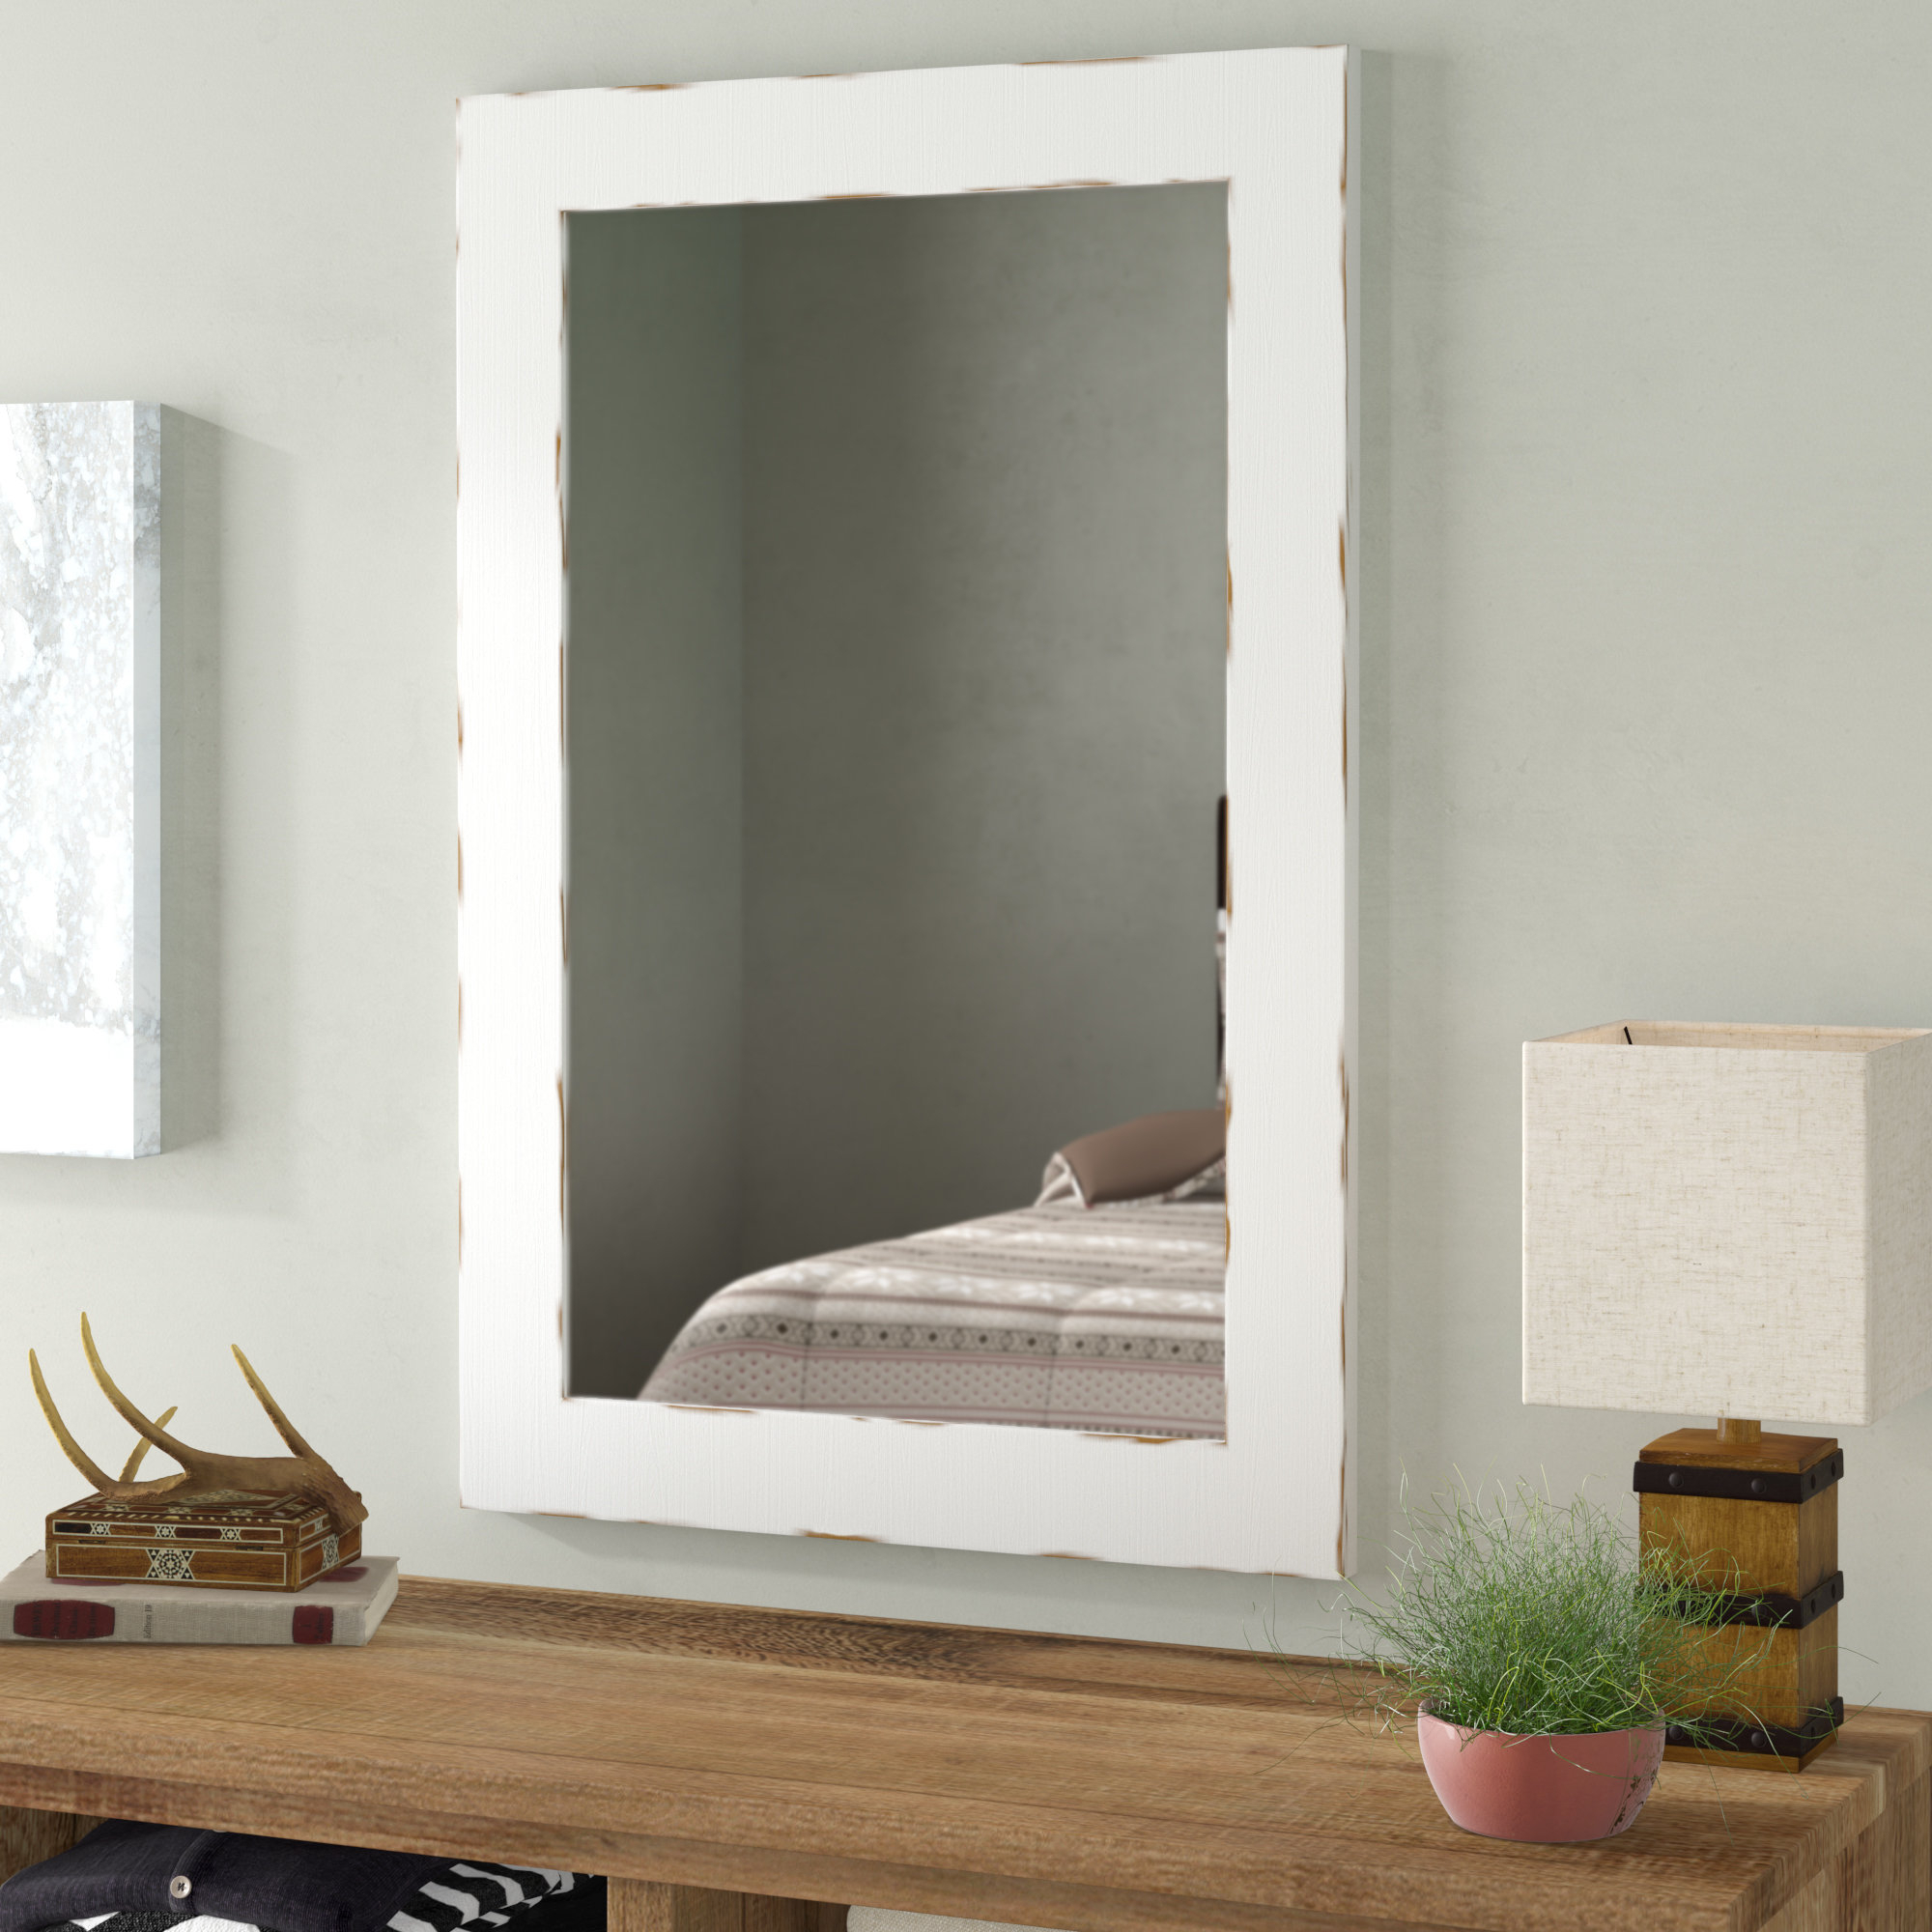 Union Rustic Longwood Rustic Beveled Accent Mirror & Reviews Within Wood Accent Mirrors (View 18 of 20)